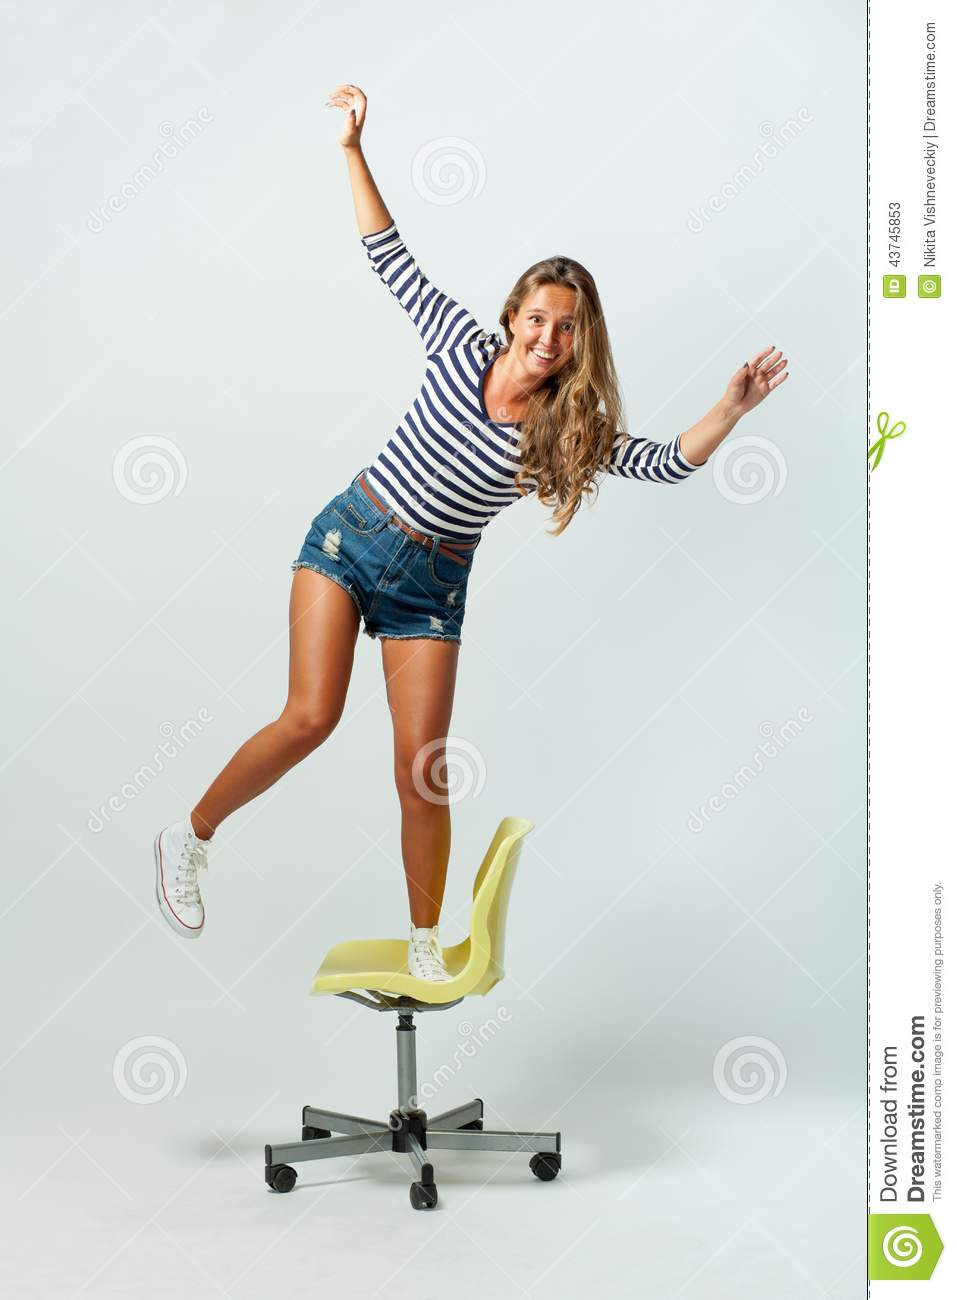 Girl Standing On A Chair Balancing Stock Photo - Image ...